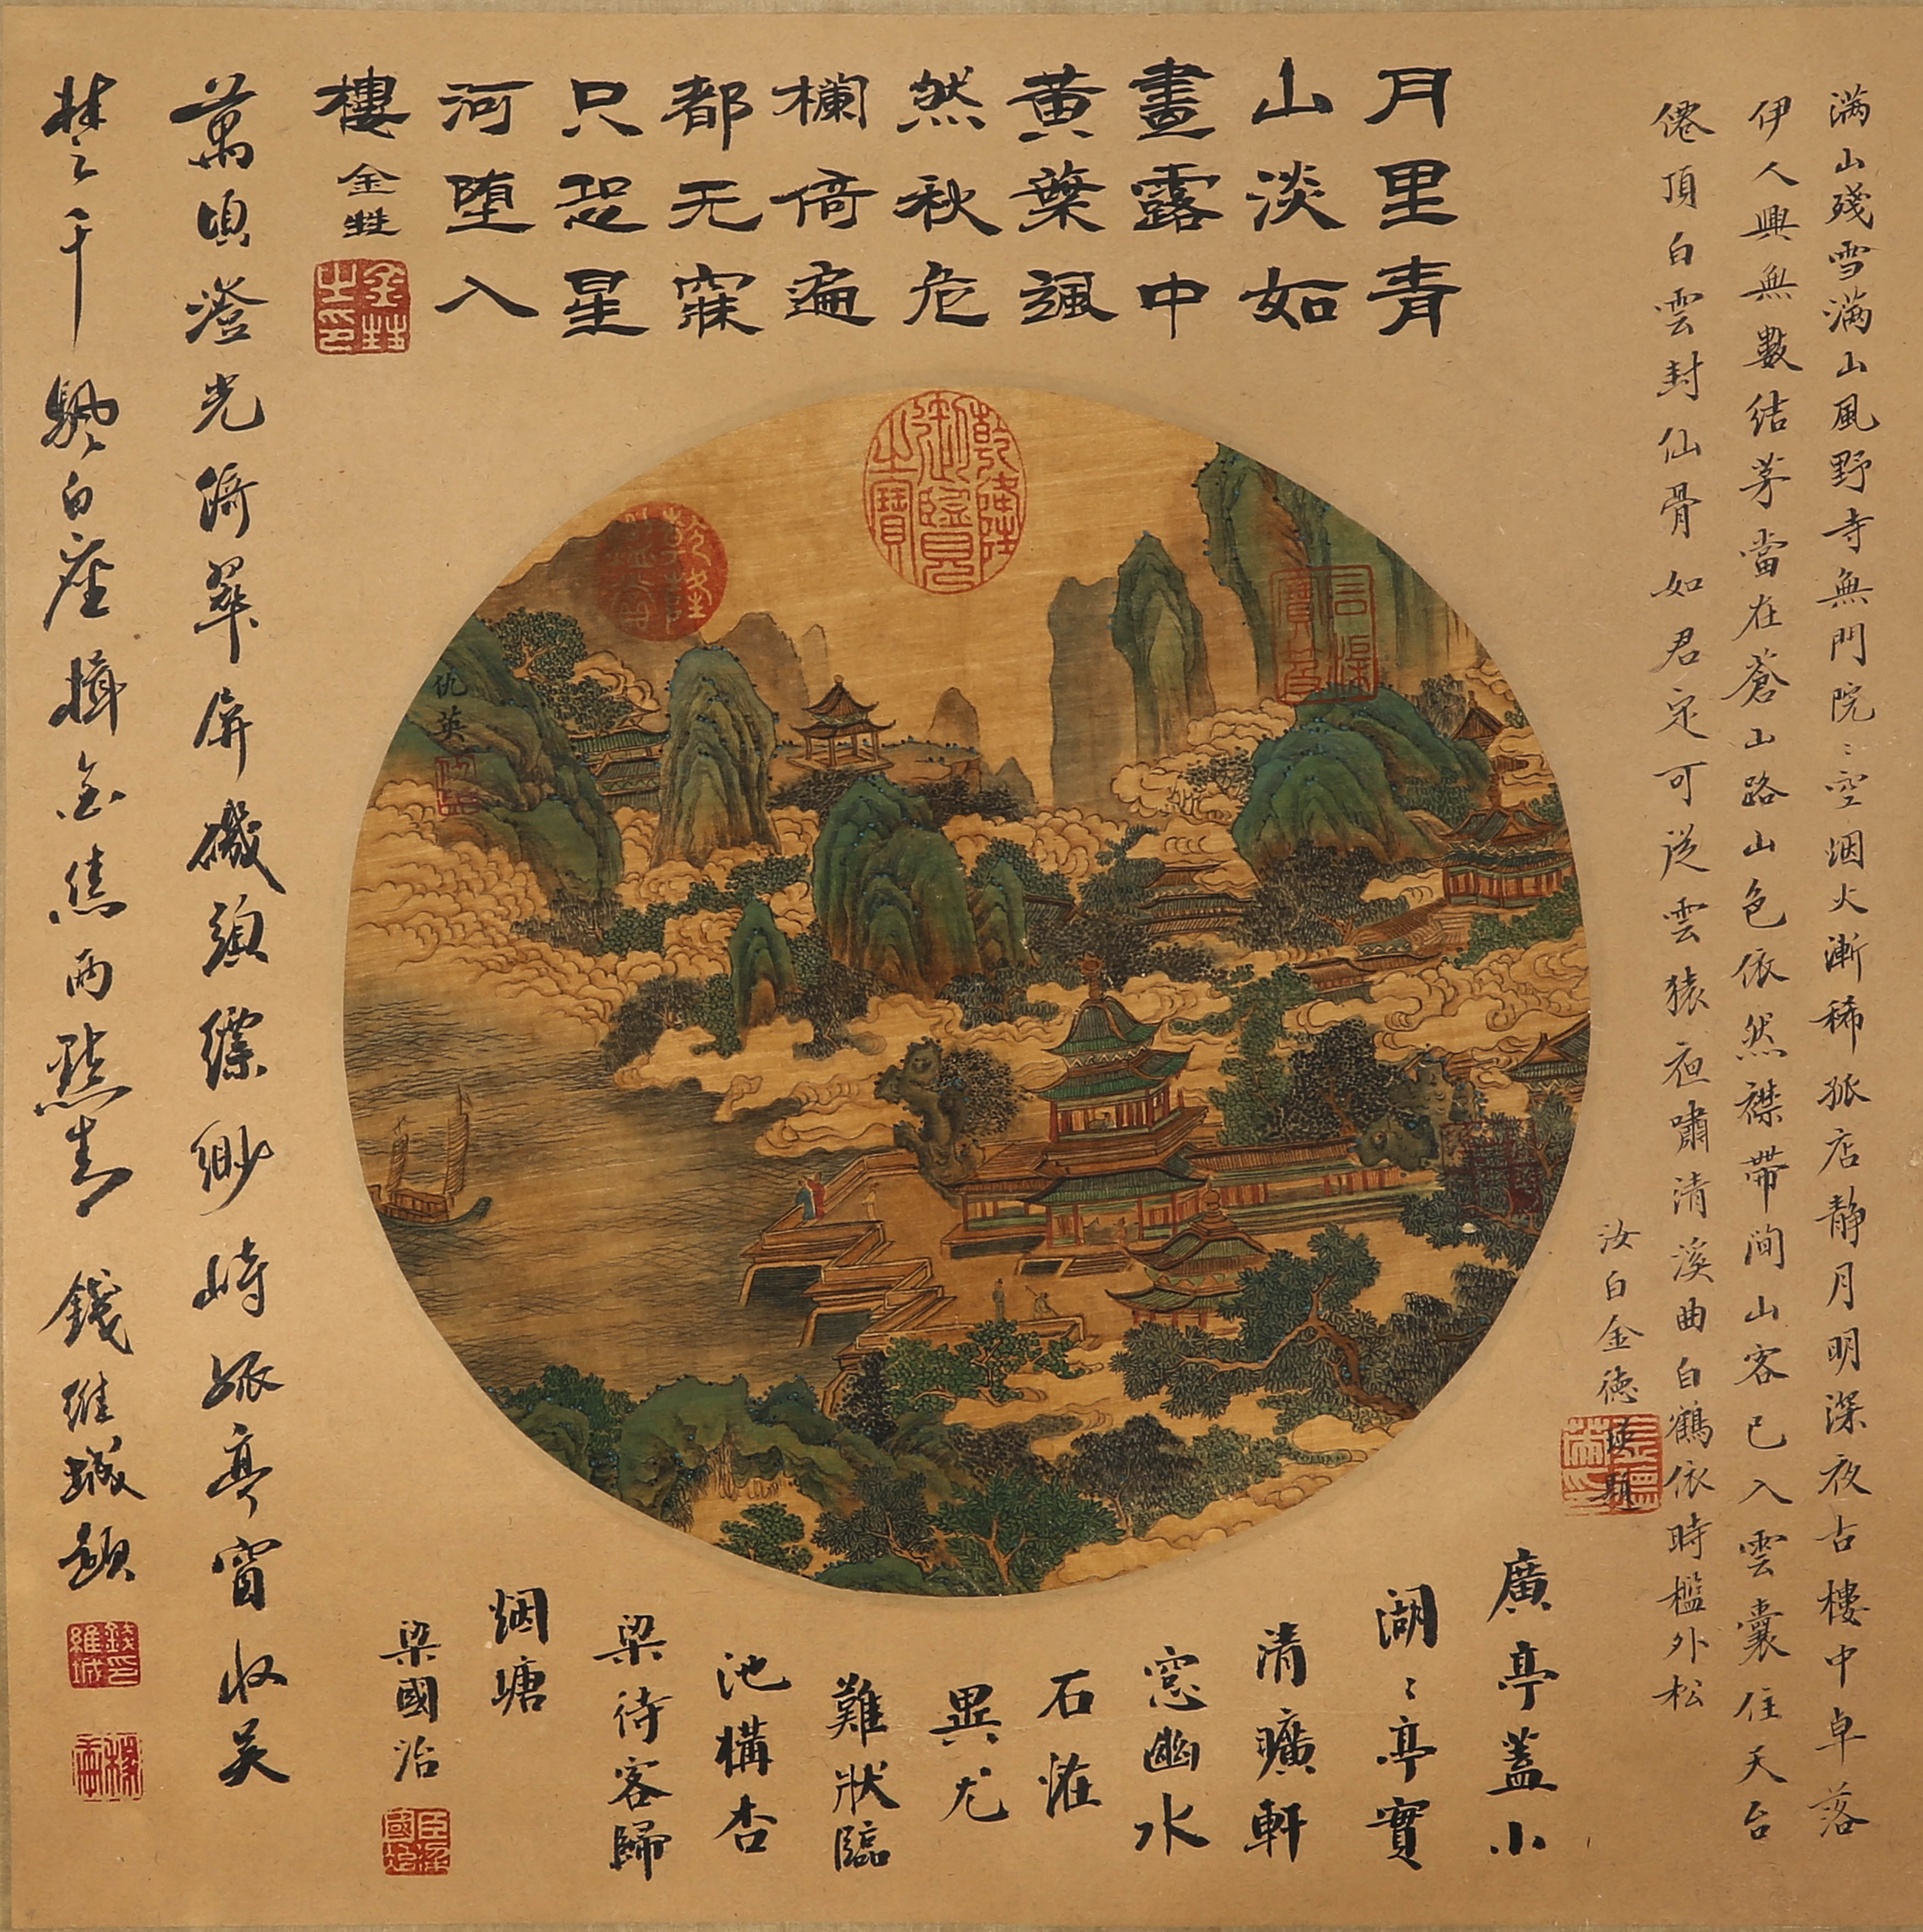 PAINTING AND CALLIGRAPHY 'CITYSCAPE', CHINA